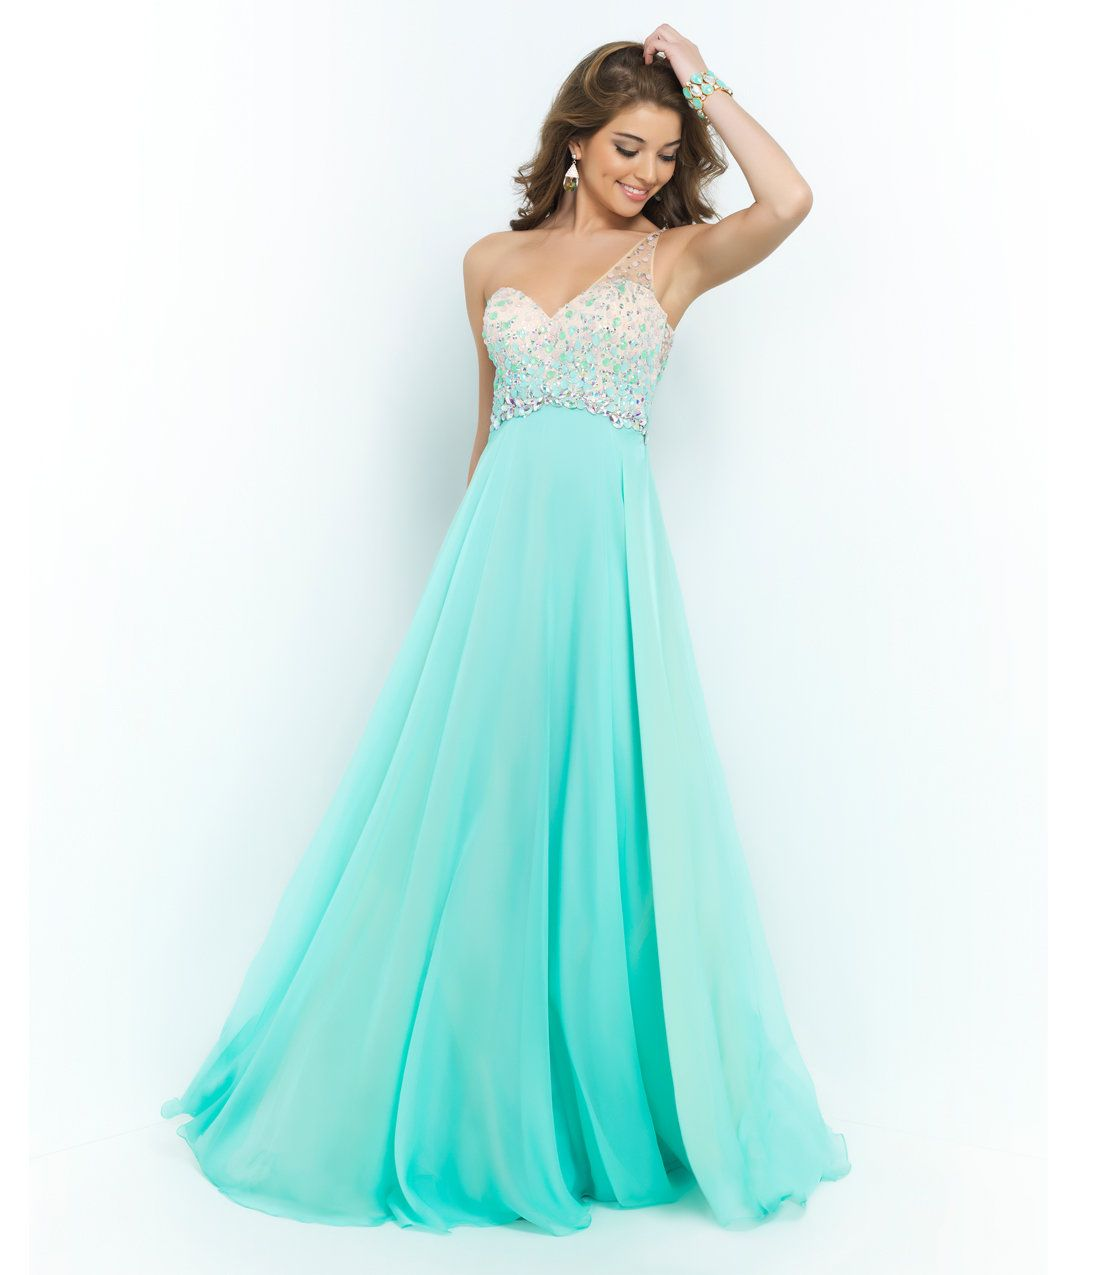 Unique Vintage Blush Prom Sea Glass Green Beaded Ombre One Shoulder ...